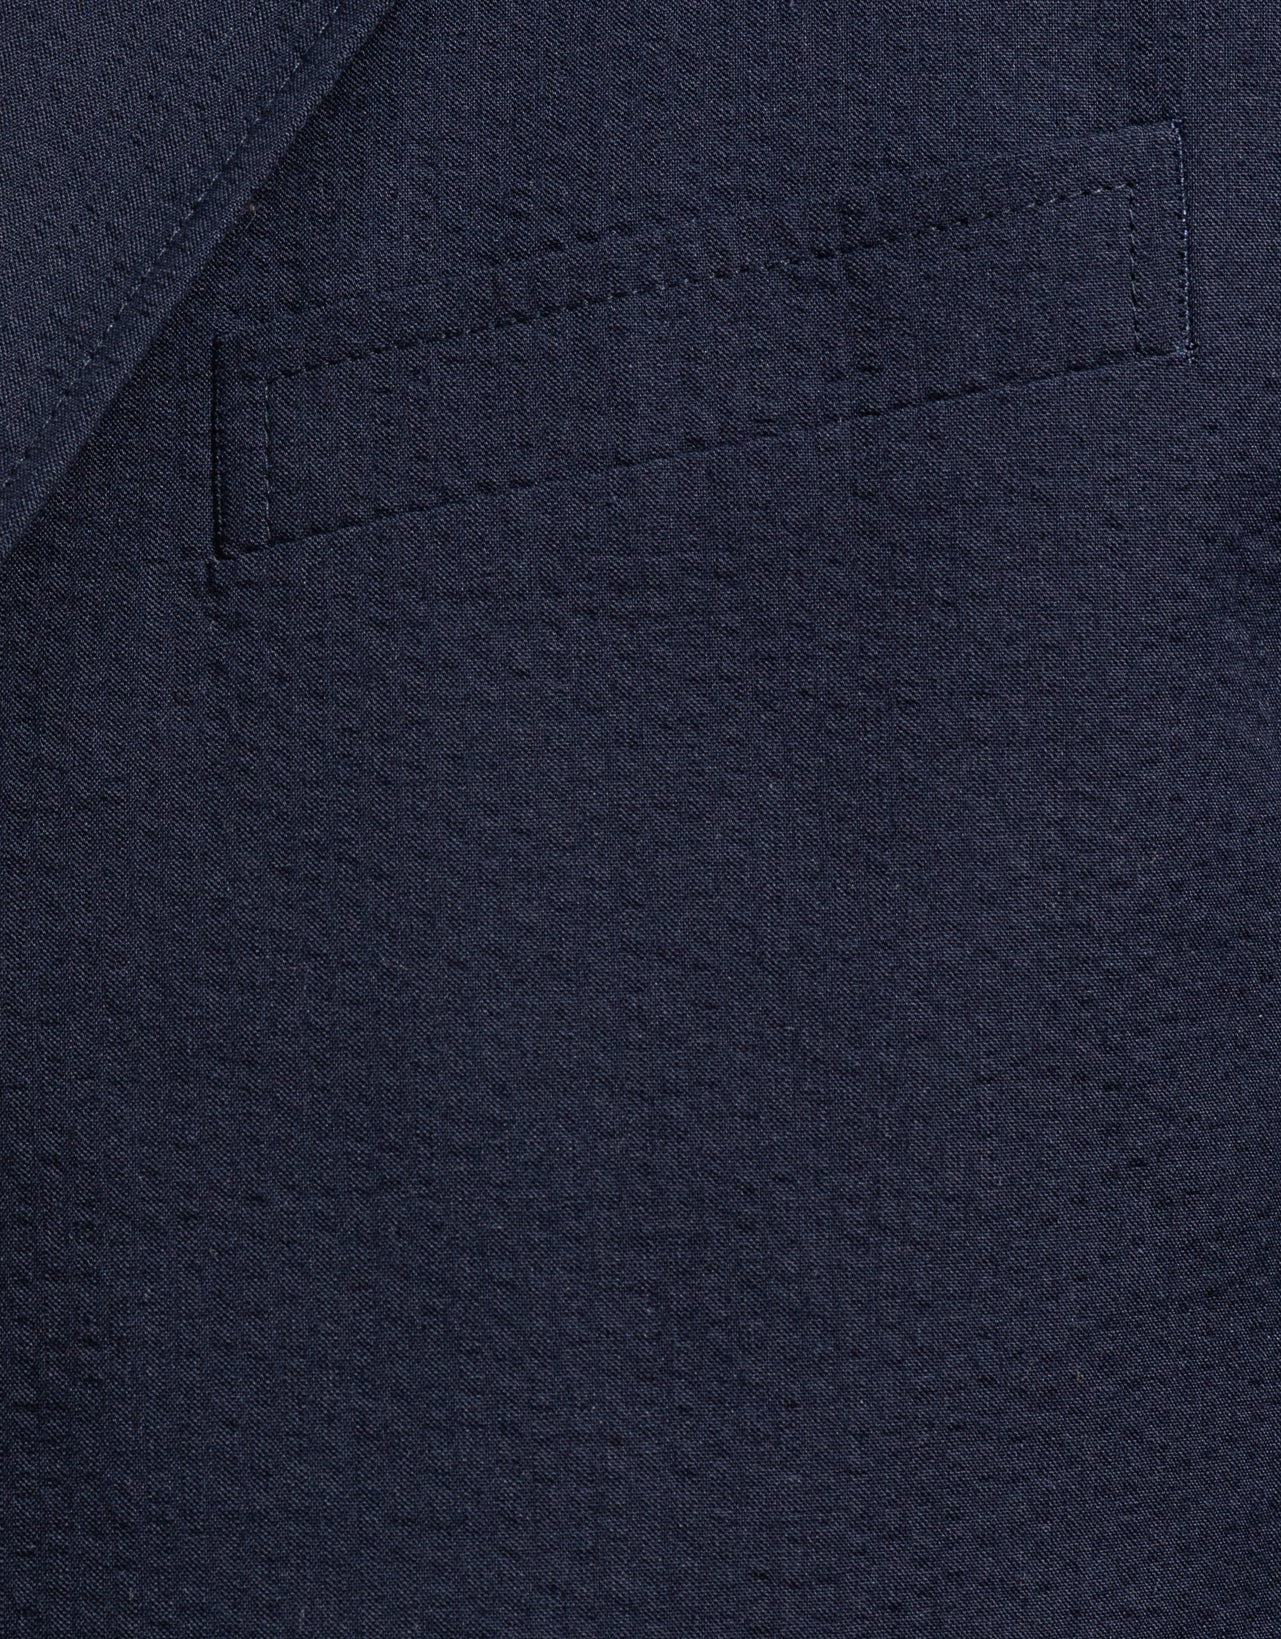 NAVY COTTON SEERSUCKER